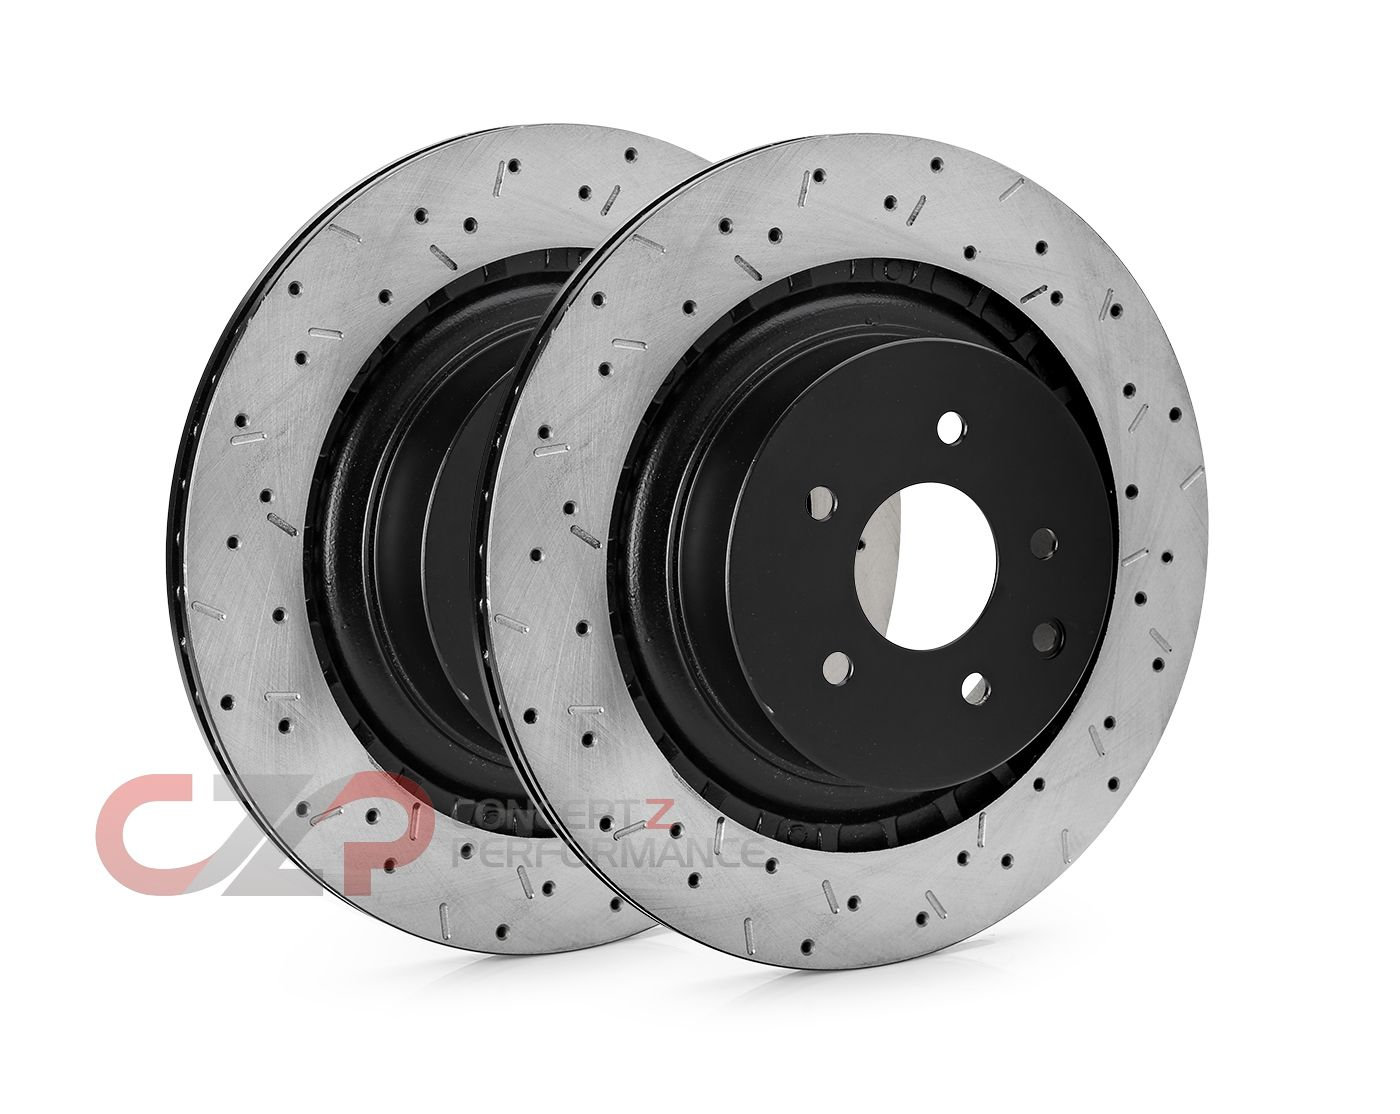 DBA 4000 Series Drilled / Slotted Rotor Set, Rear Sport Model Akebono Calipers - Infiniti Q50, Q60, FX50